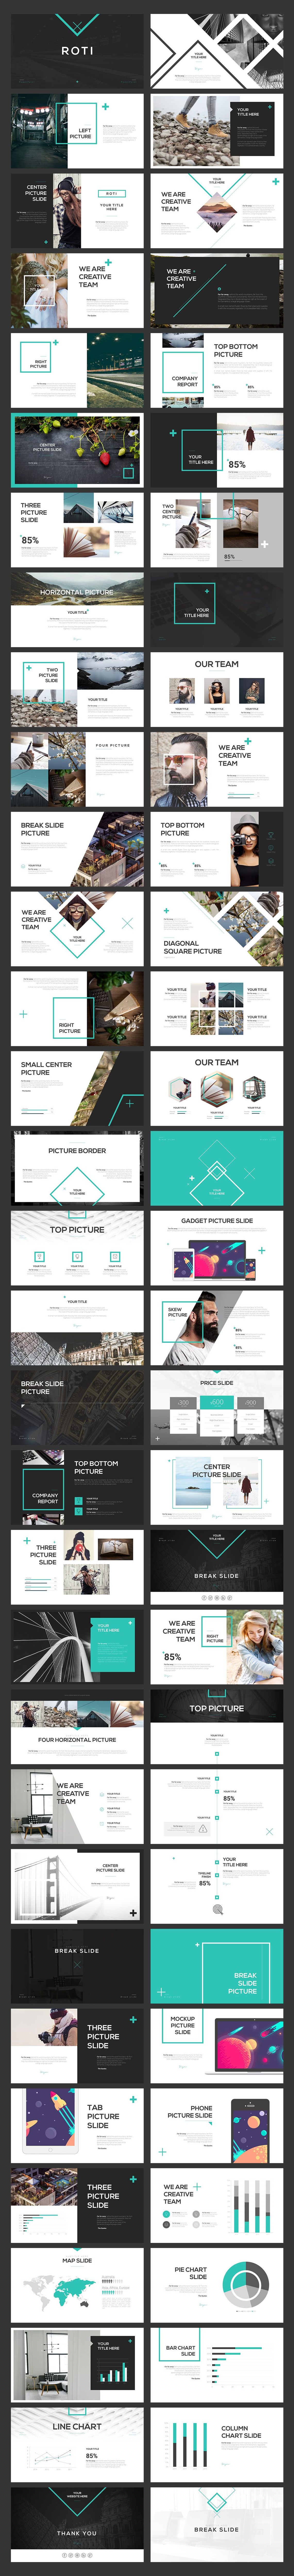 Get Your Attractive And Professional Realestate Brochure Design - Keynote brochure template